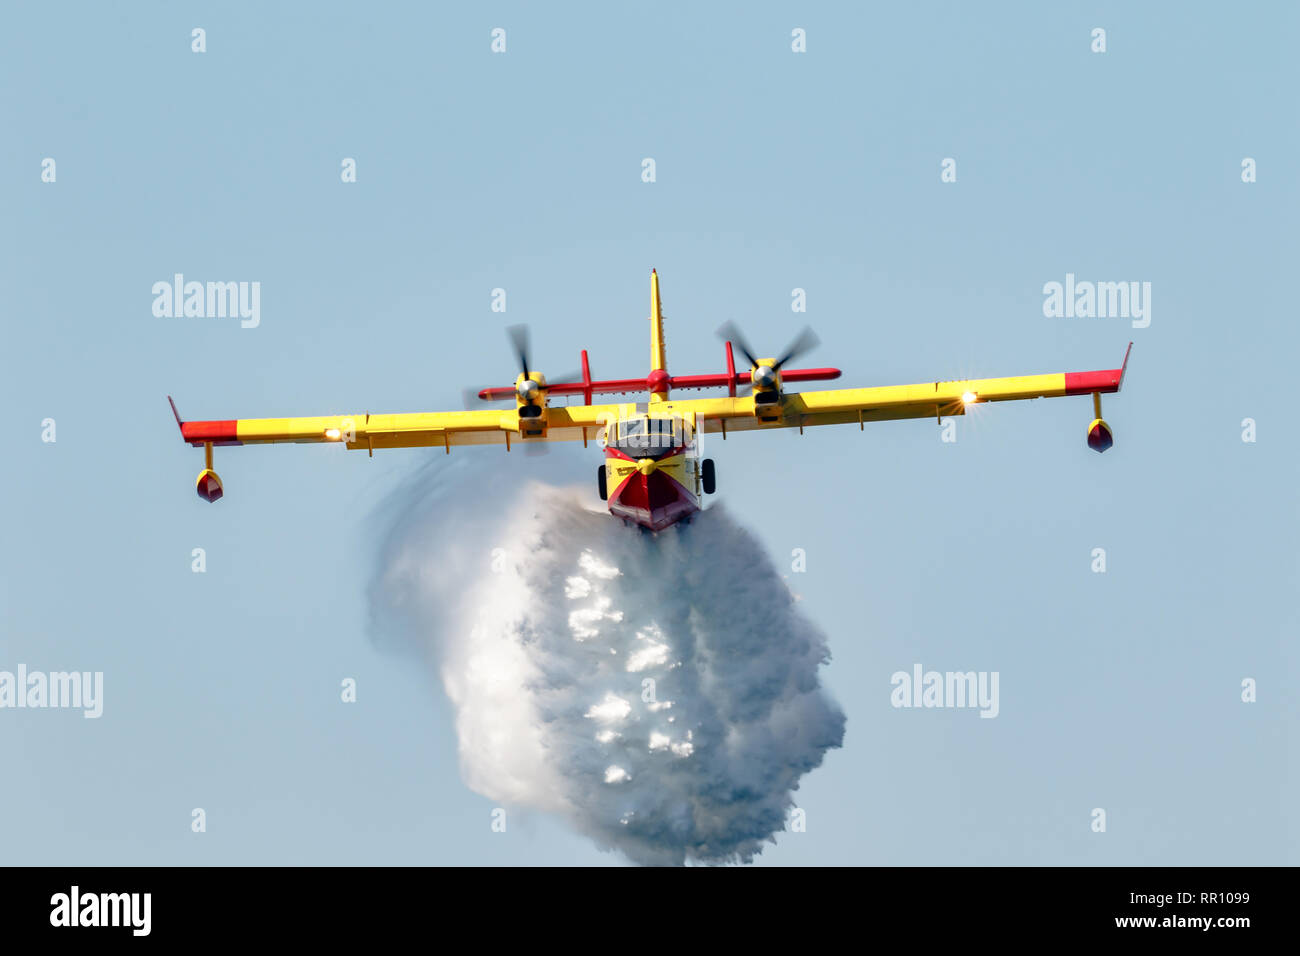 MOTRIL, GRANADA,  SPAIN-JUN 17:  Seaplane Canadair CL-415  taking part in an exhibition on the 13th airshow of Motril on June 17, 2018, in Motril, Gra - Stock Image